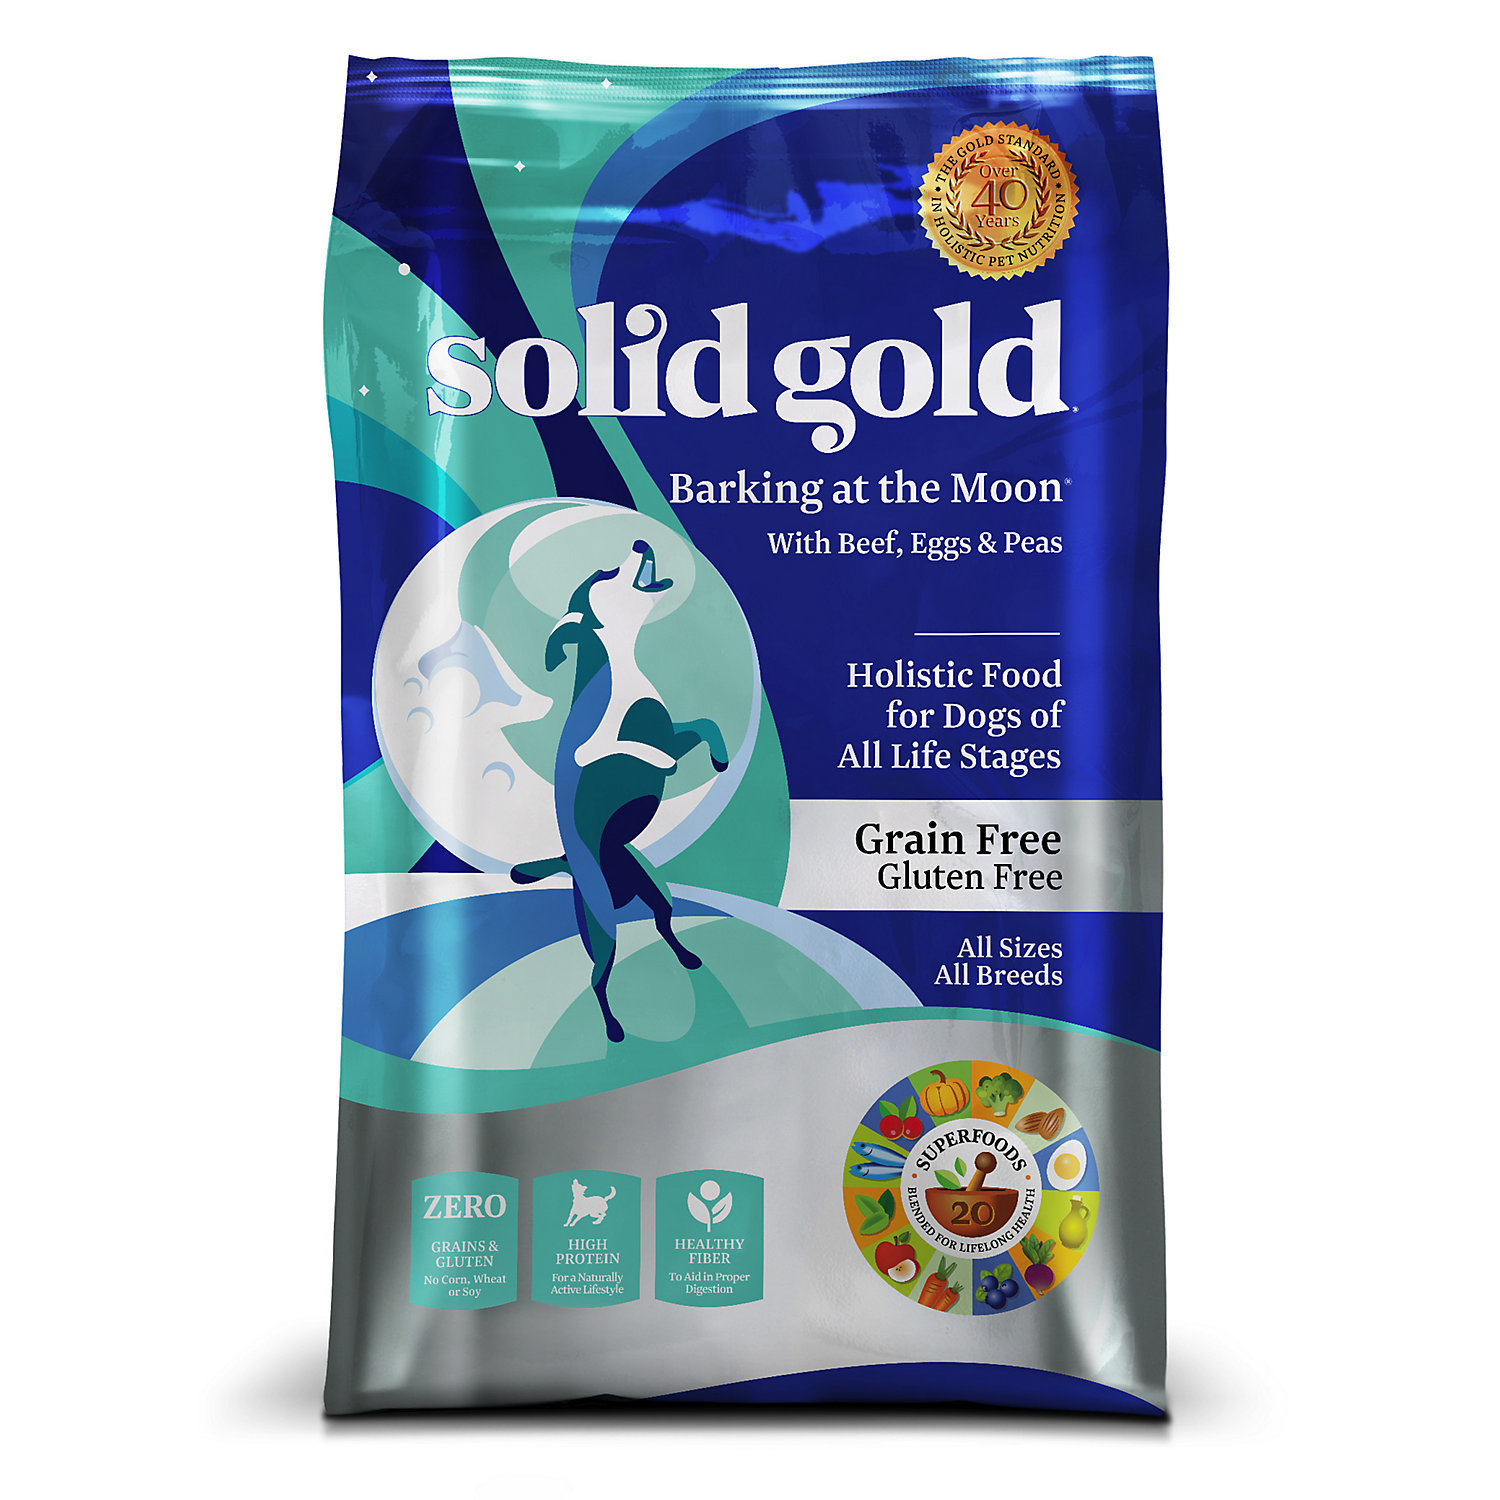 Solid Gold Barking at the Moon Beef, Egg & Peas Grain Free Adult Dog Food, 12 lb (9/18)  (A.I4)